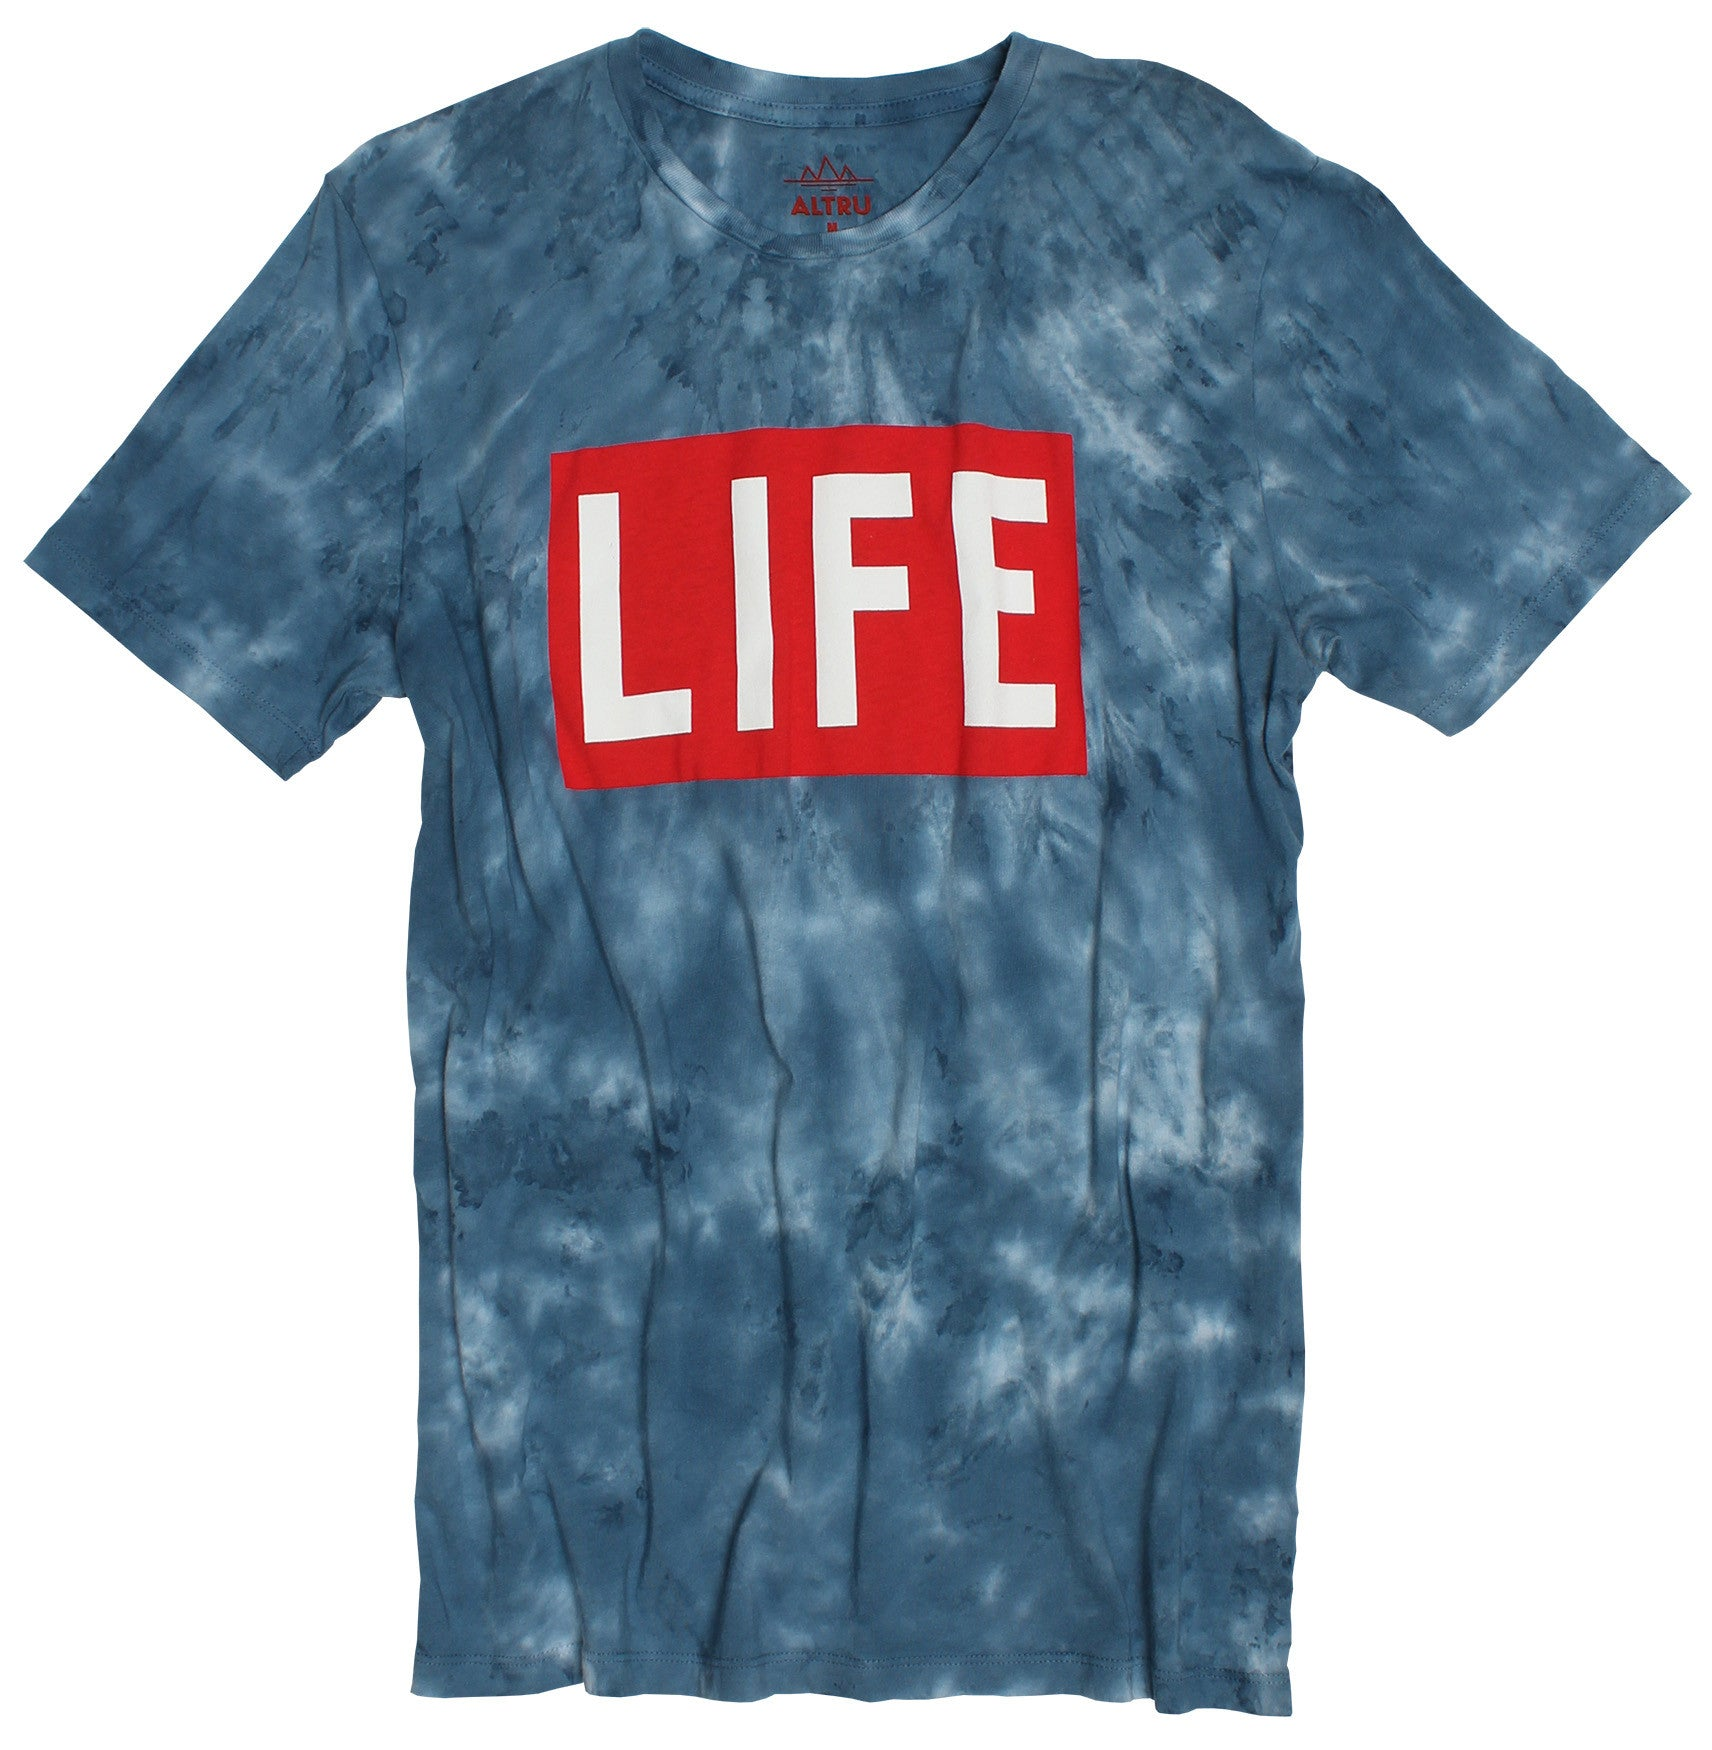 Life on tiedye t shirt magazine logo on cloud wash style for Types of tie dye shirts